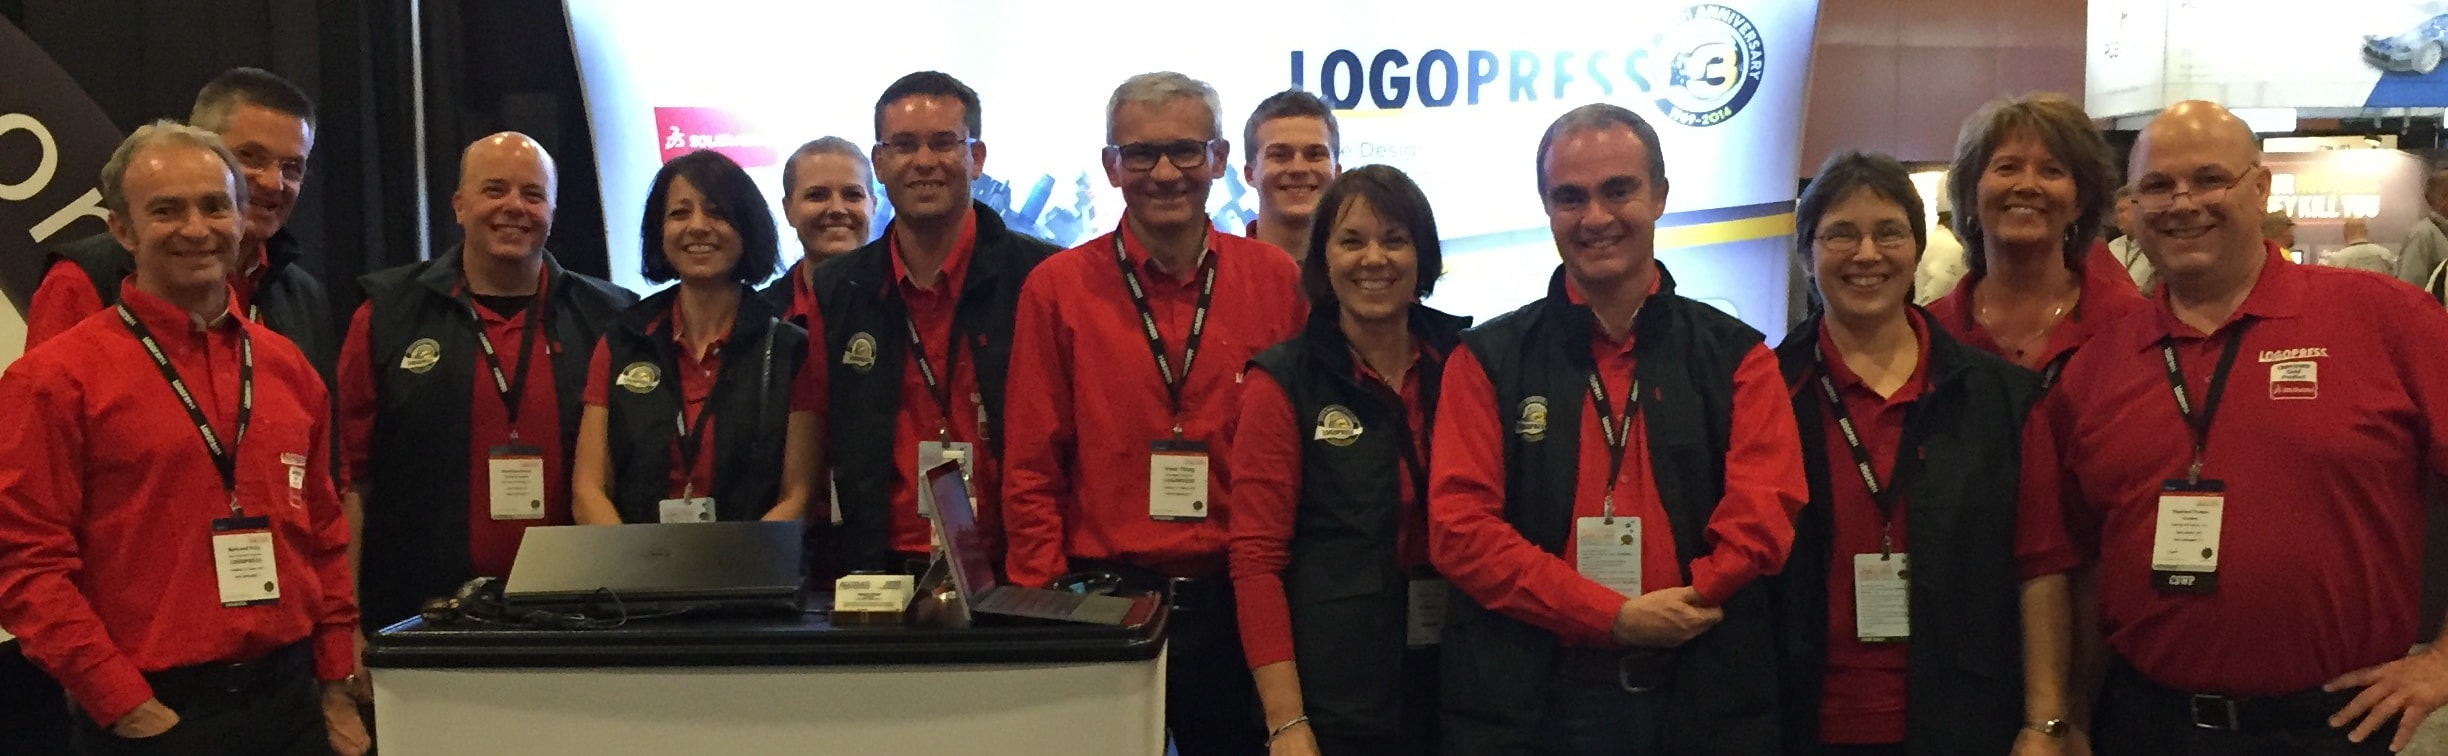 Accurate_Logopress_group_SOLIDWORKS_World_2015_crop-min.JPG